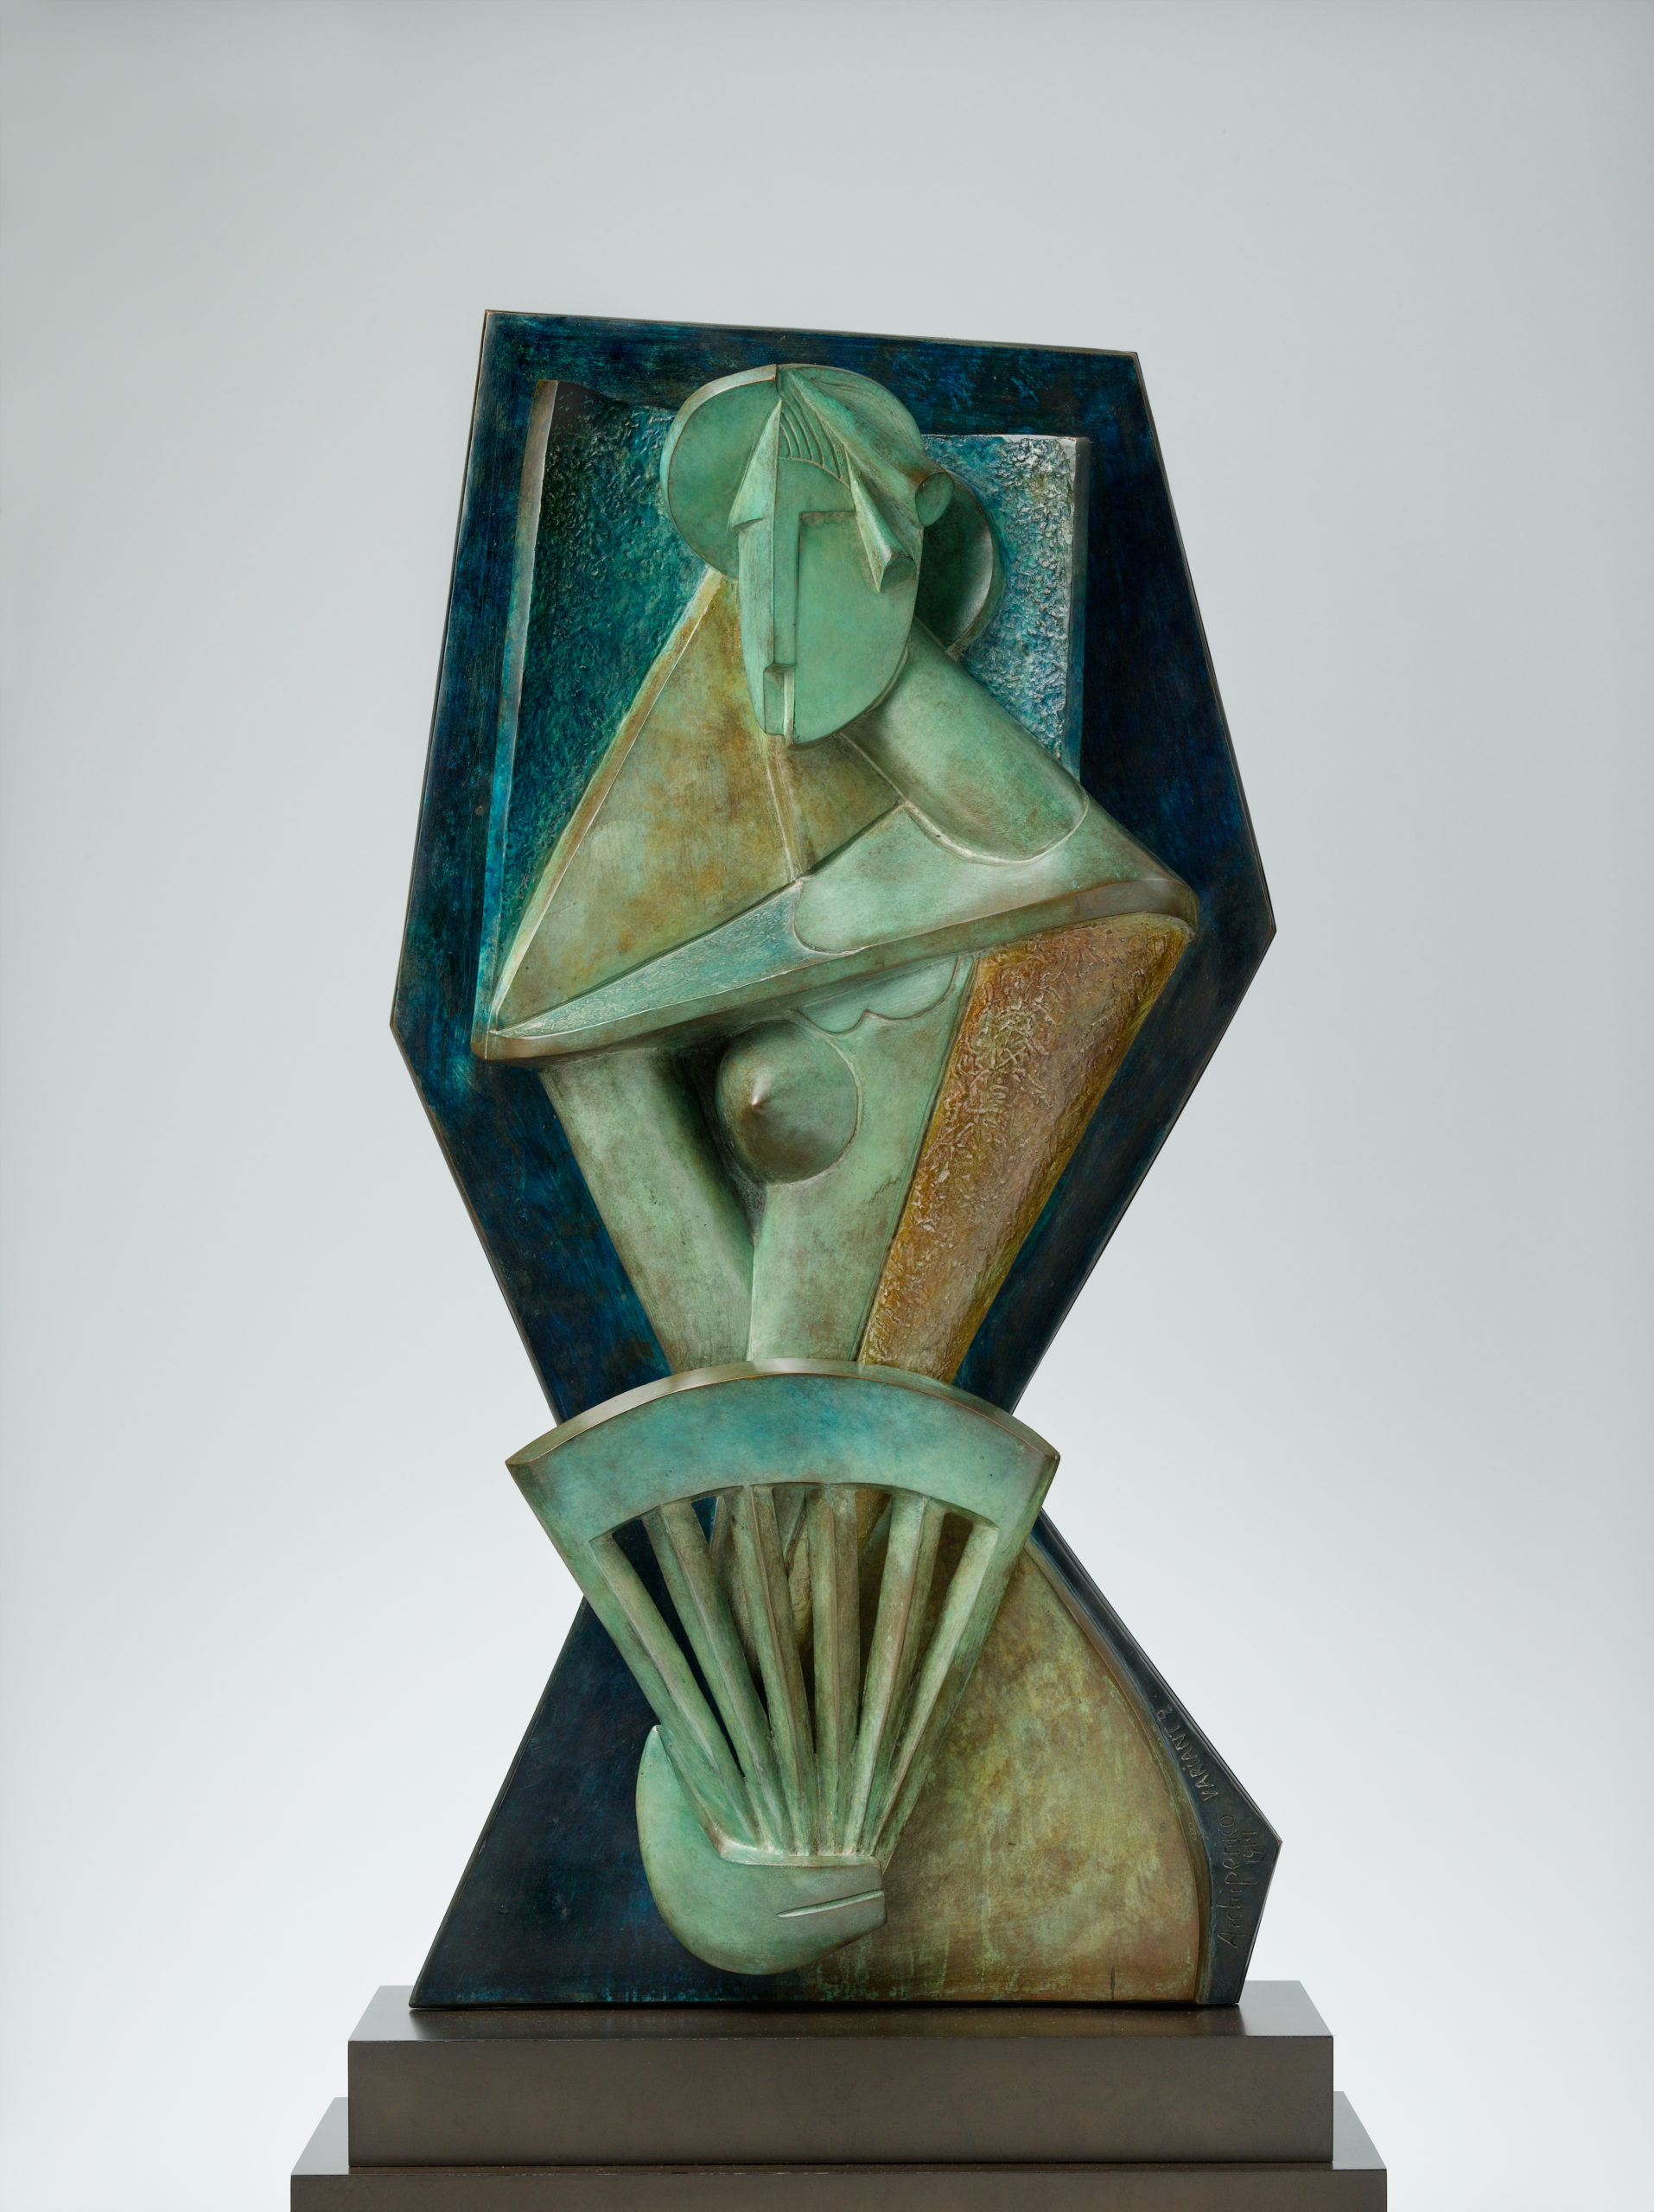 A geometric light-green bronze figure of a woman holding a fan, edged with dark blue.